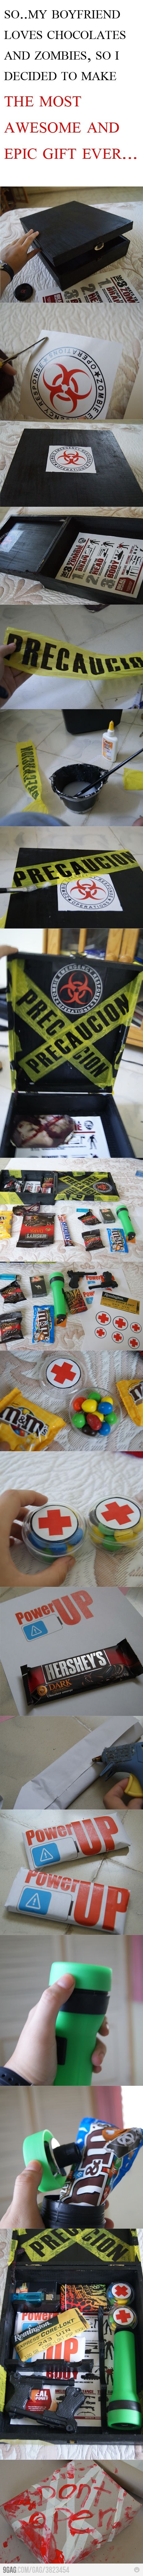 Zombie candy gift - would be cool for a party /  gift